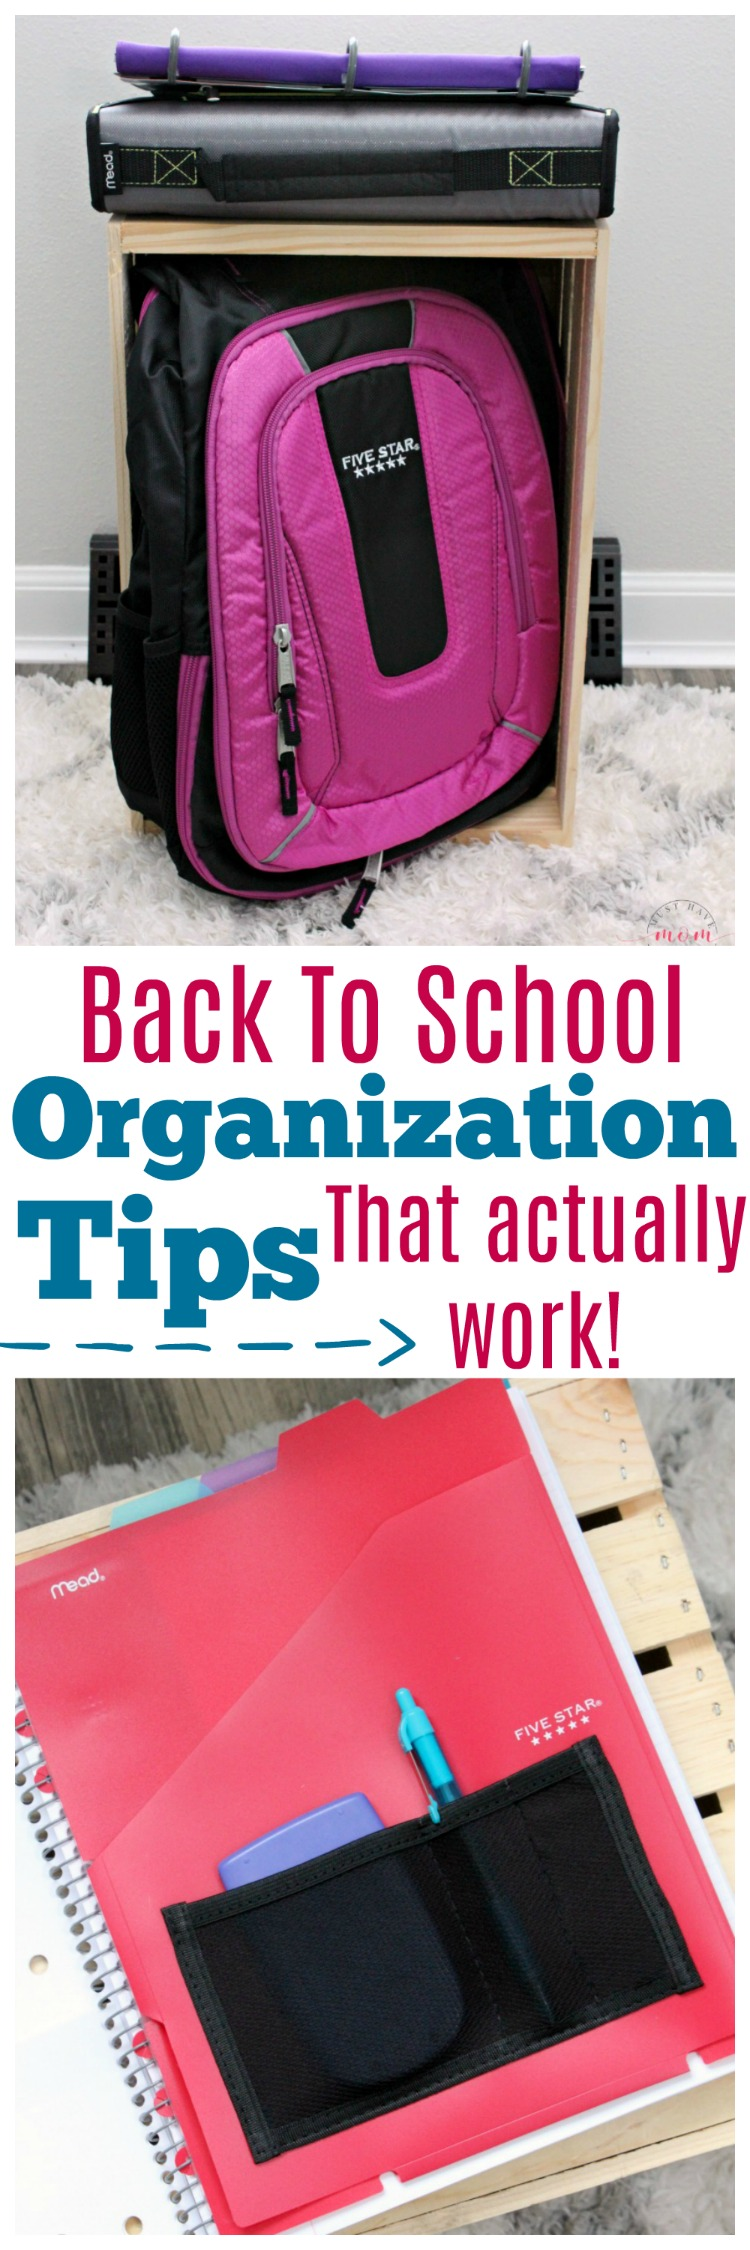 Back to school organization tips that actually work! Get organized for back to school with these genius ideas.